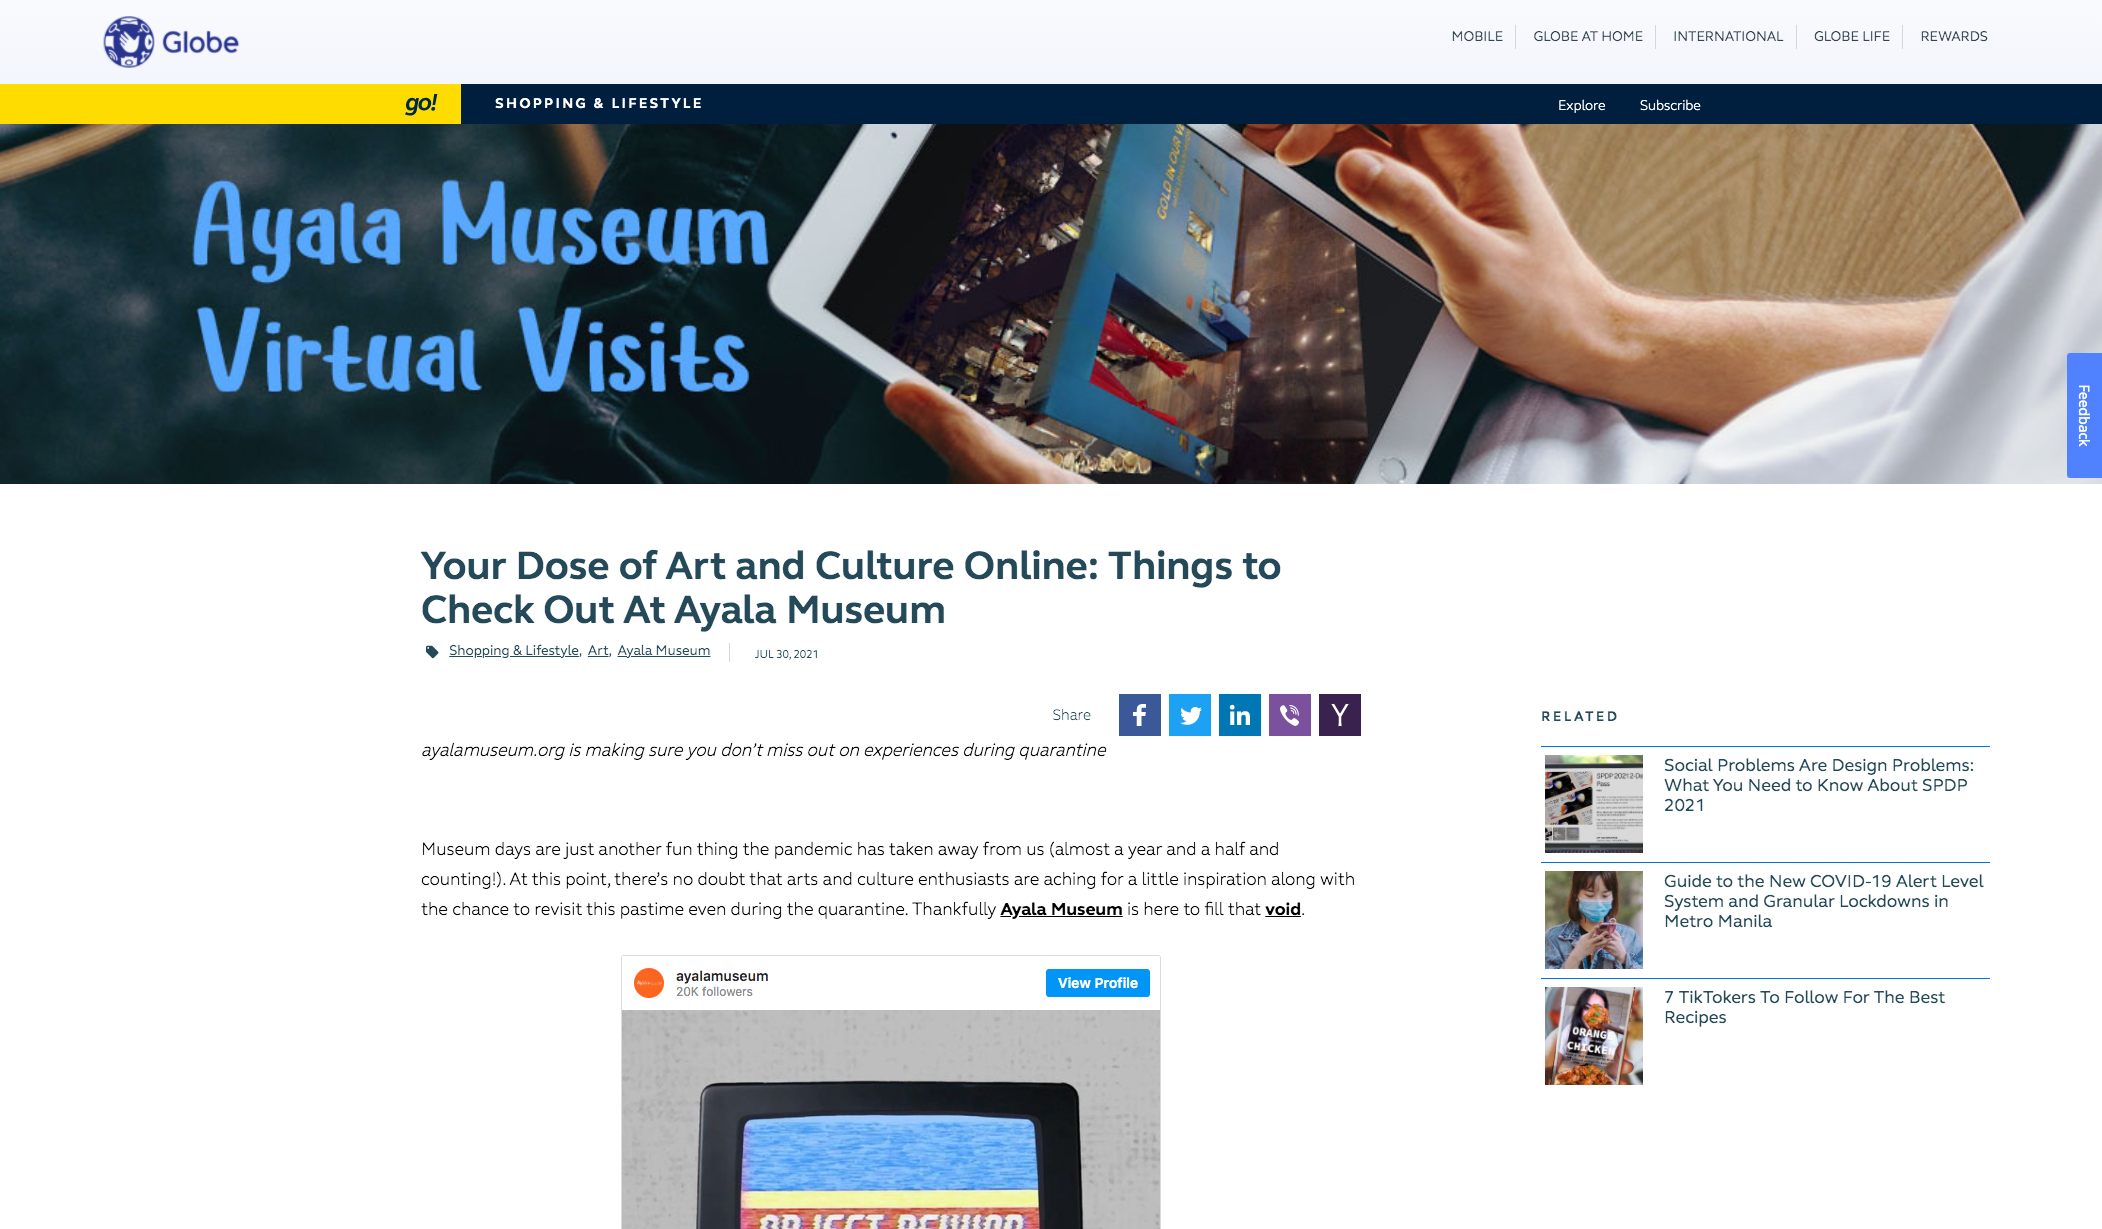 Globe – Your Dose of Art and Culture Online: Things to Check Out At Ayala Museum